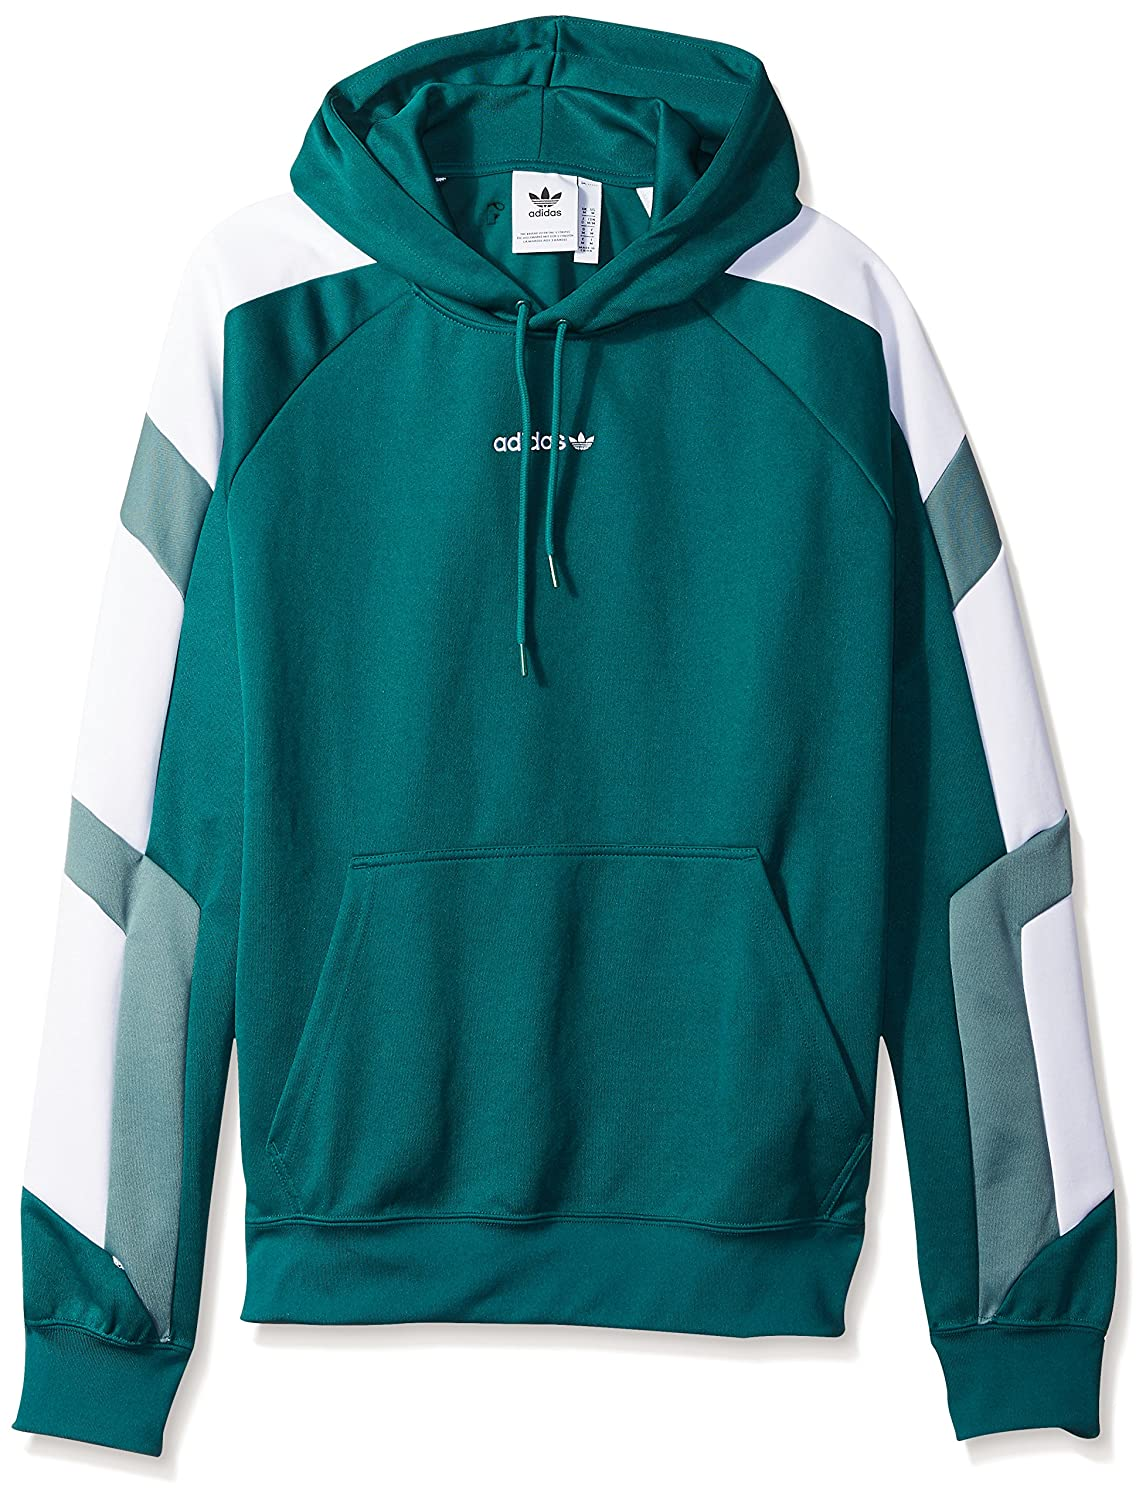 adidas Originals Men's EQT Color Block Hoodie